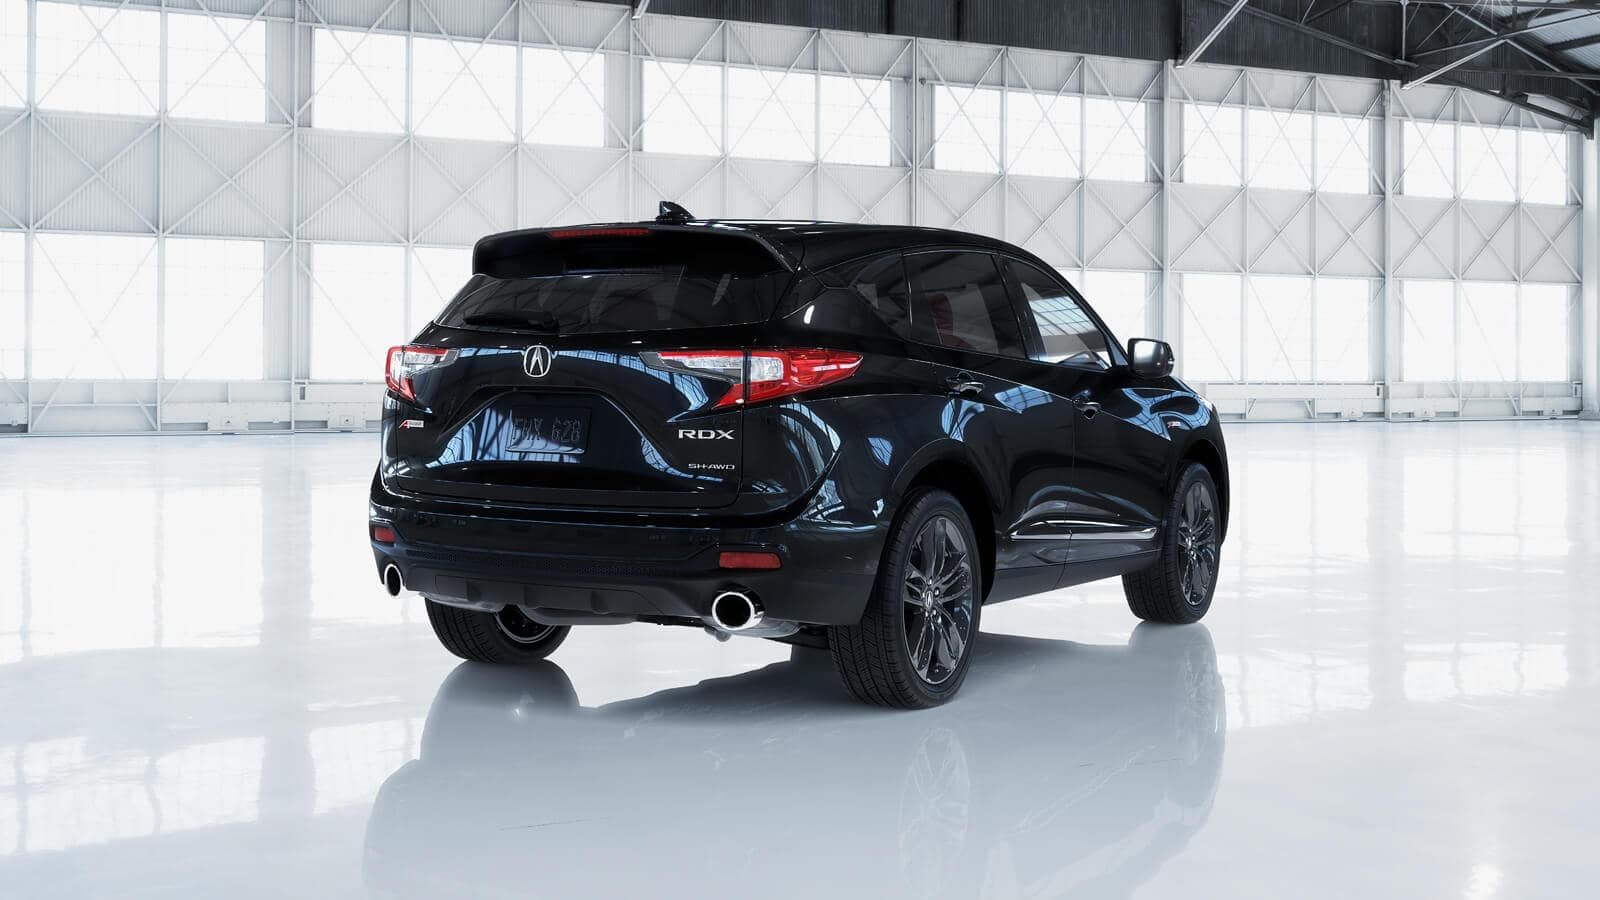 2020 Acura RDX A-Spec Exterior Rear Angle Passenger Side